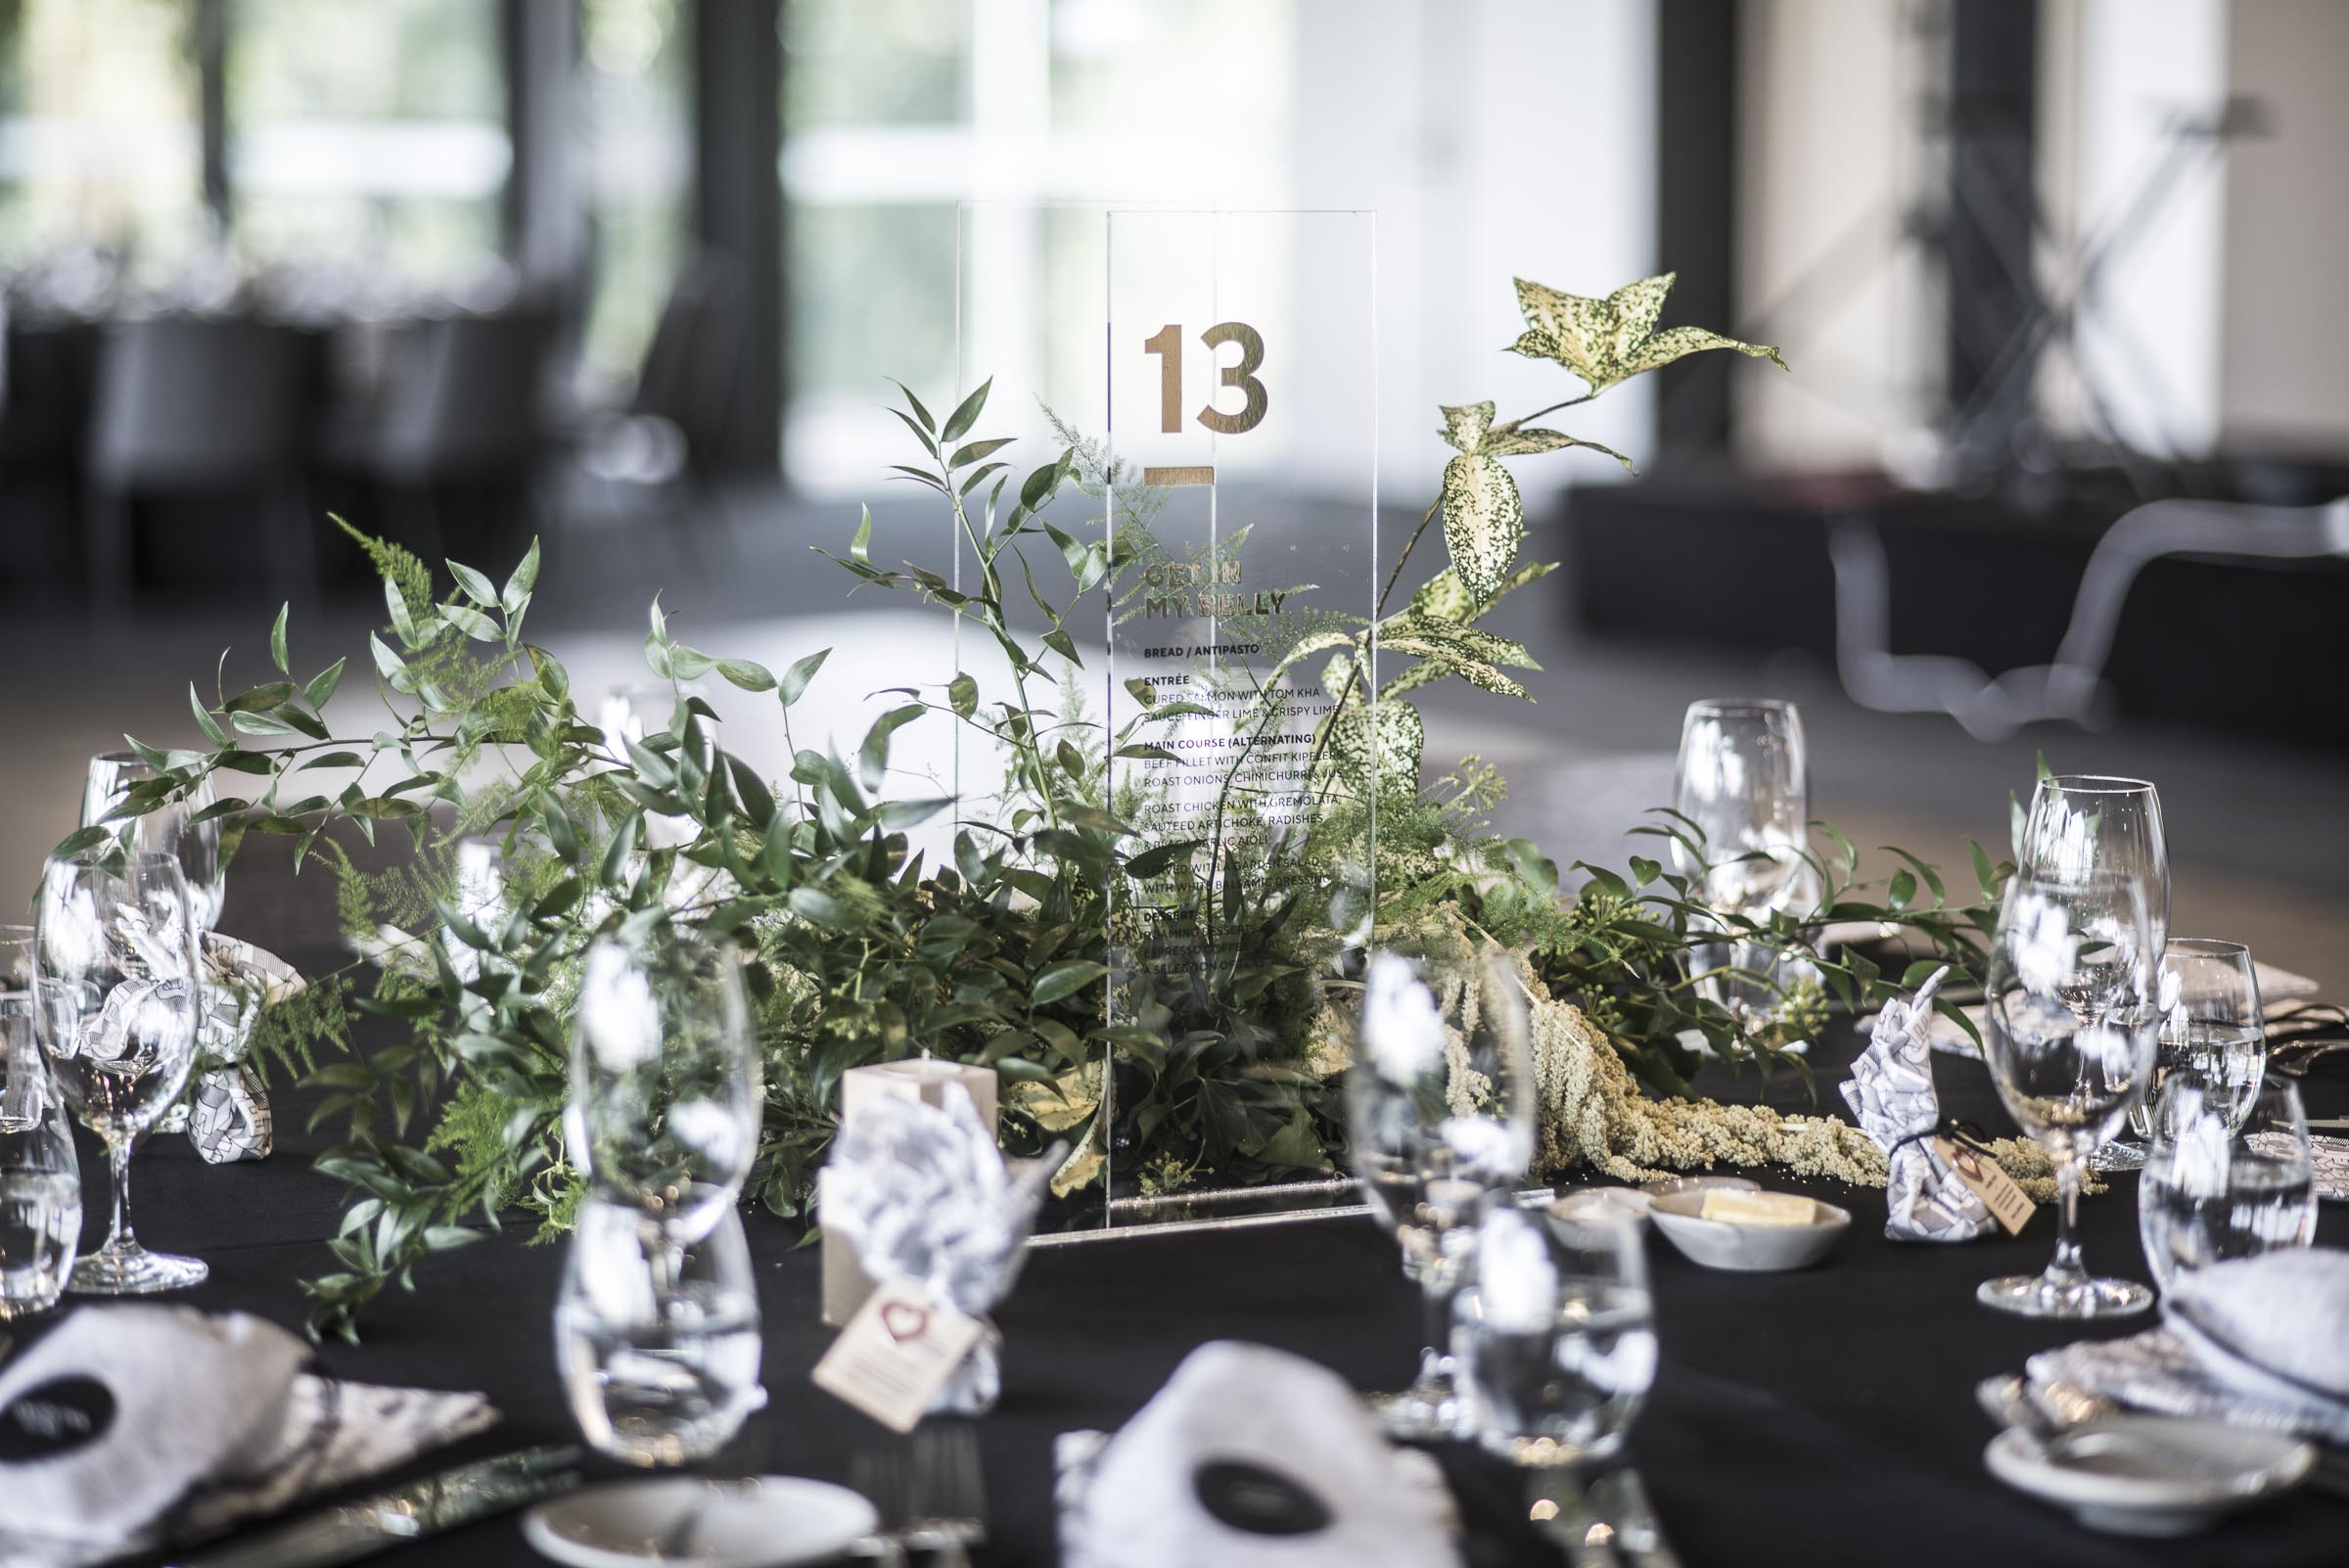 Foliage guest table arrangements